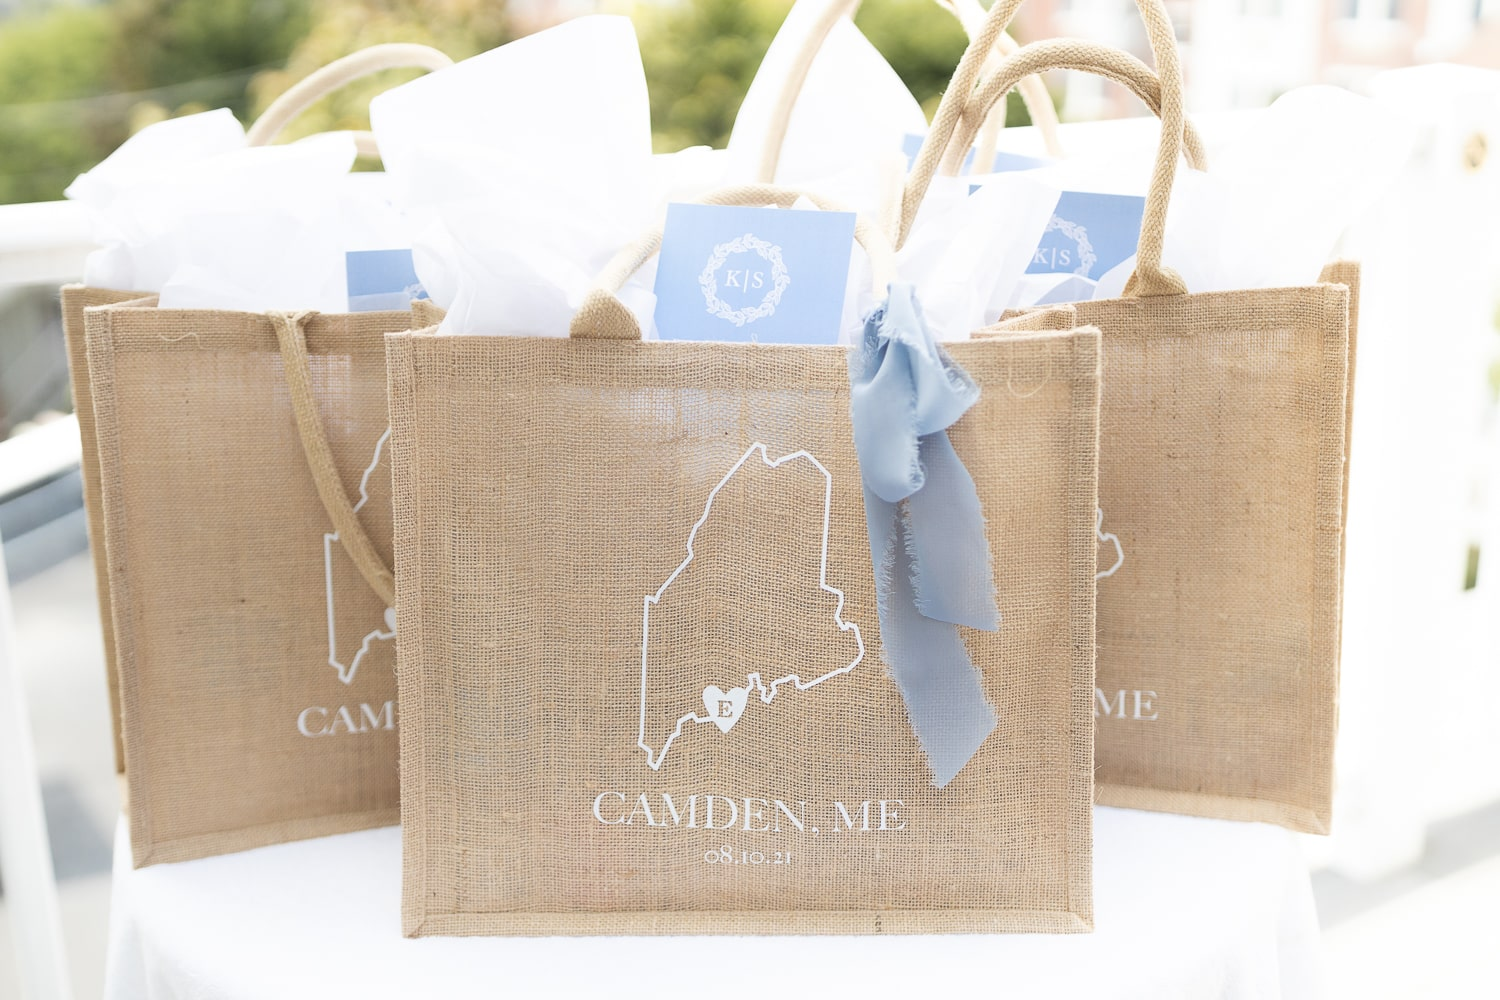 DIY welcome bags for wedding guests created by DIY blogger Stephanie Ziajka on Diary of a Debutante